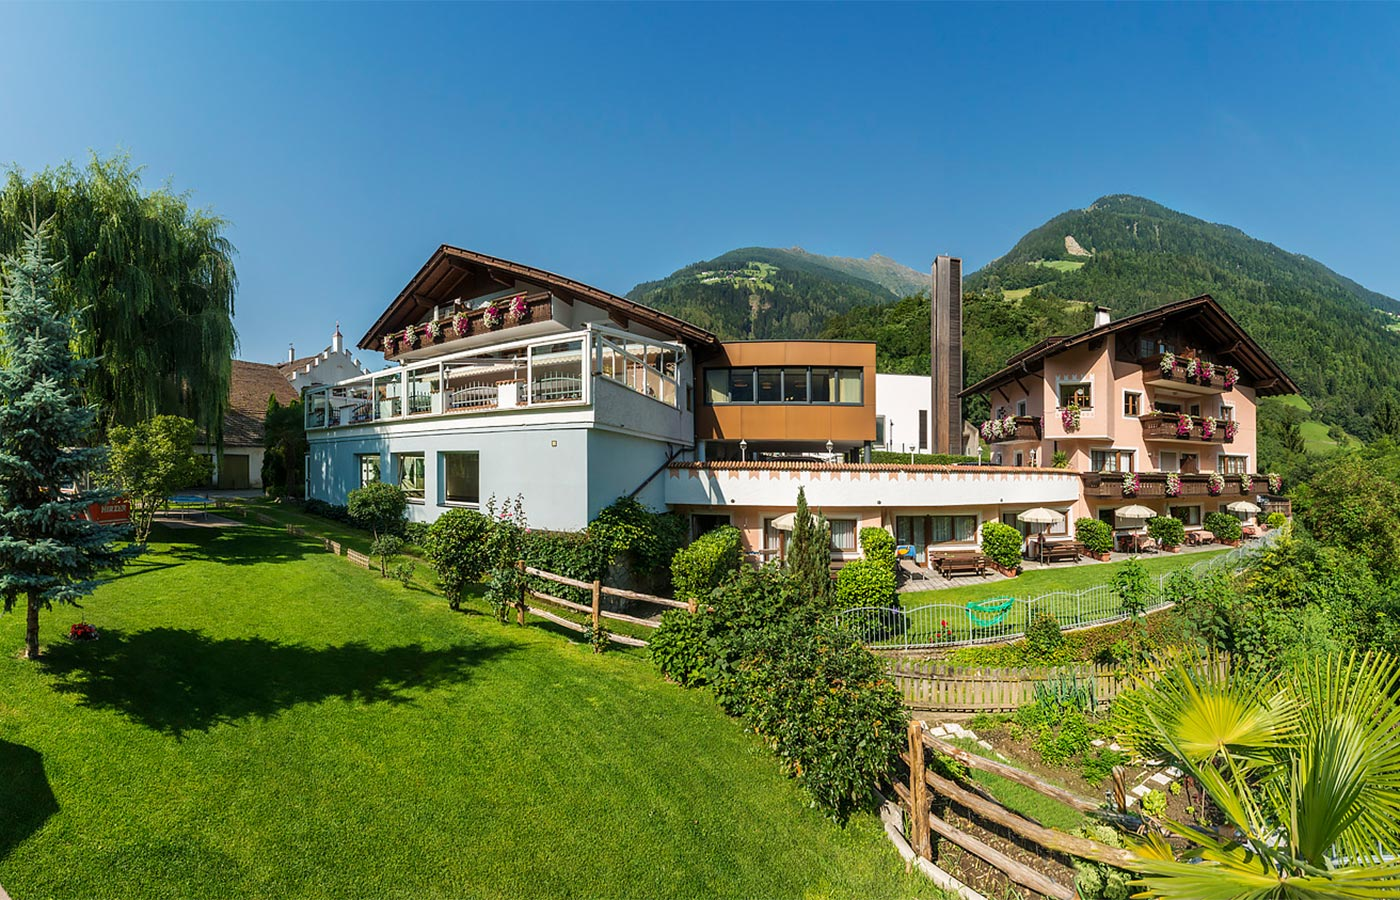 Garden surrounded by nature at the Hotel Alpenhof